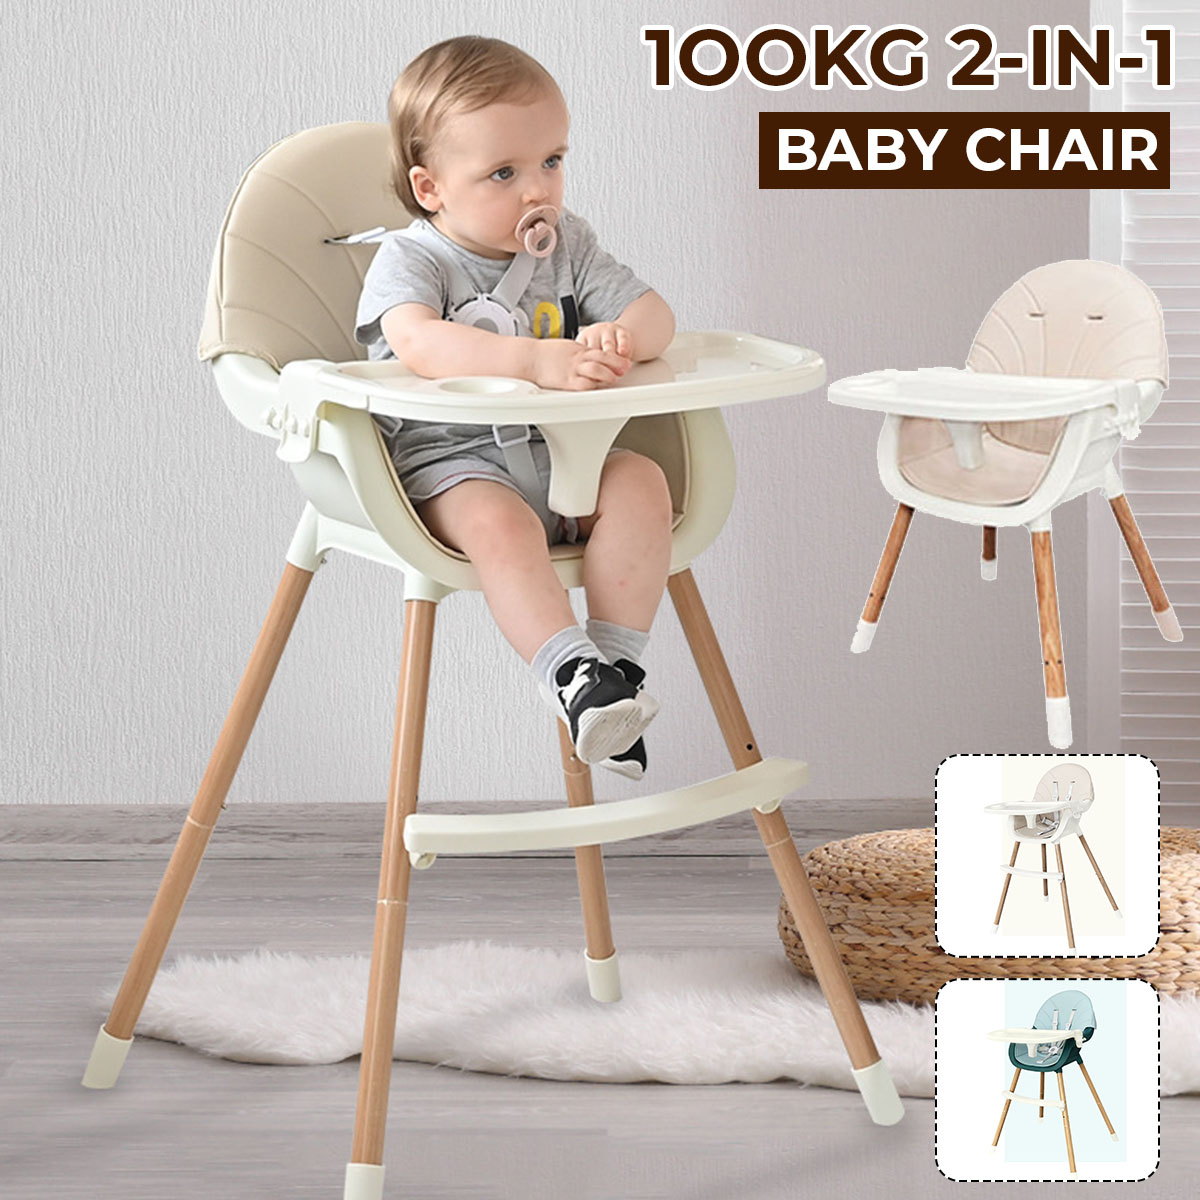 Baby High Chairs for Children Feeding Multifunctional Portable Kids Highchairs Double Layer Dining Table Seats with PU Cover